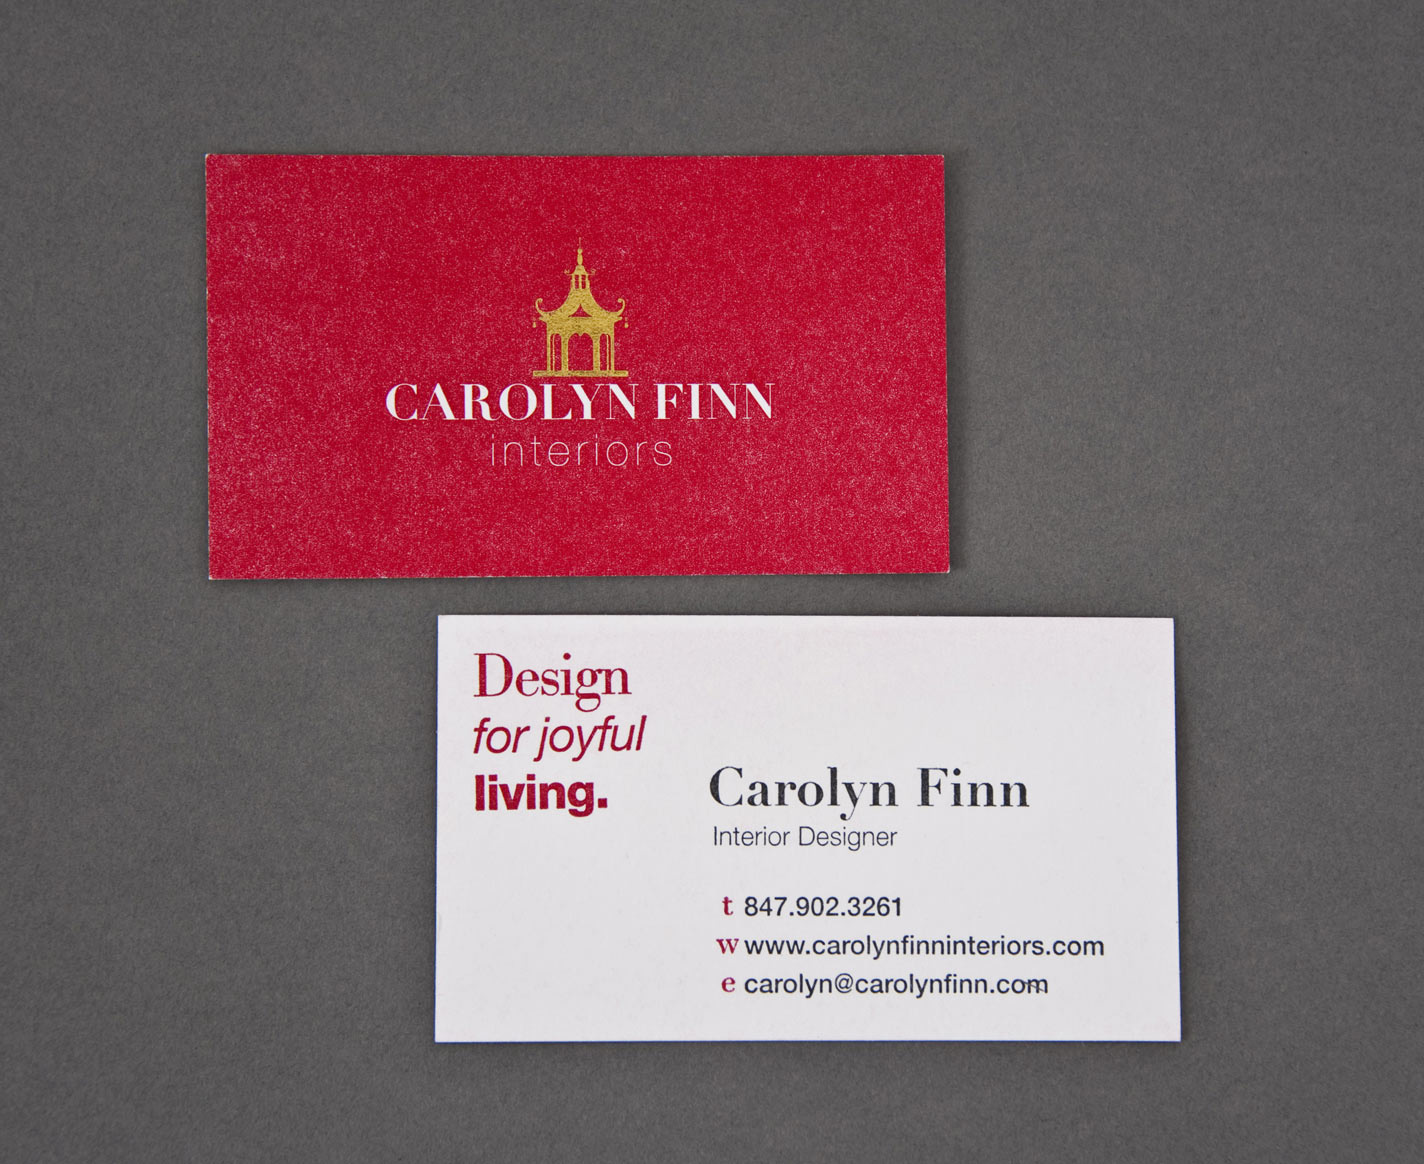 Carolyn Finn - Business Card